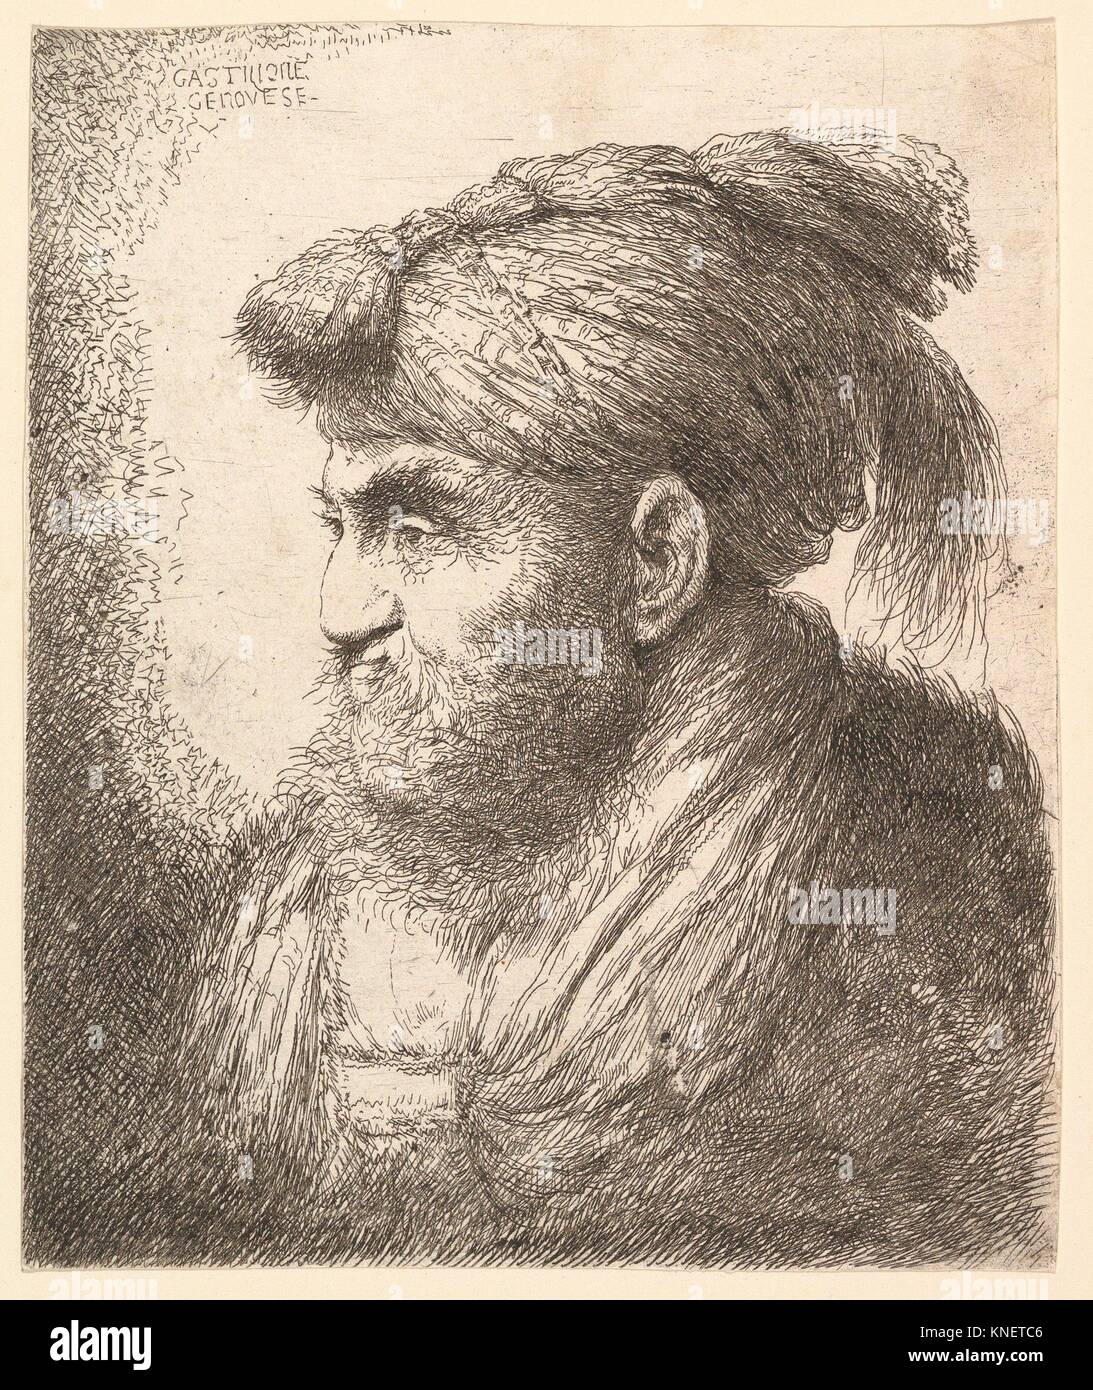 Man with a Beard and Mustache, Wearing a Tasseled Headdress, Facing Left. Artist: Giovanni Benedetto Castiglione - Stock Image